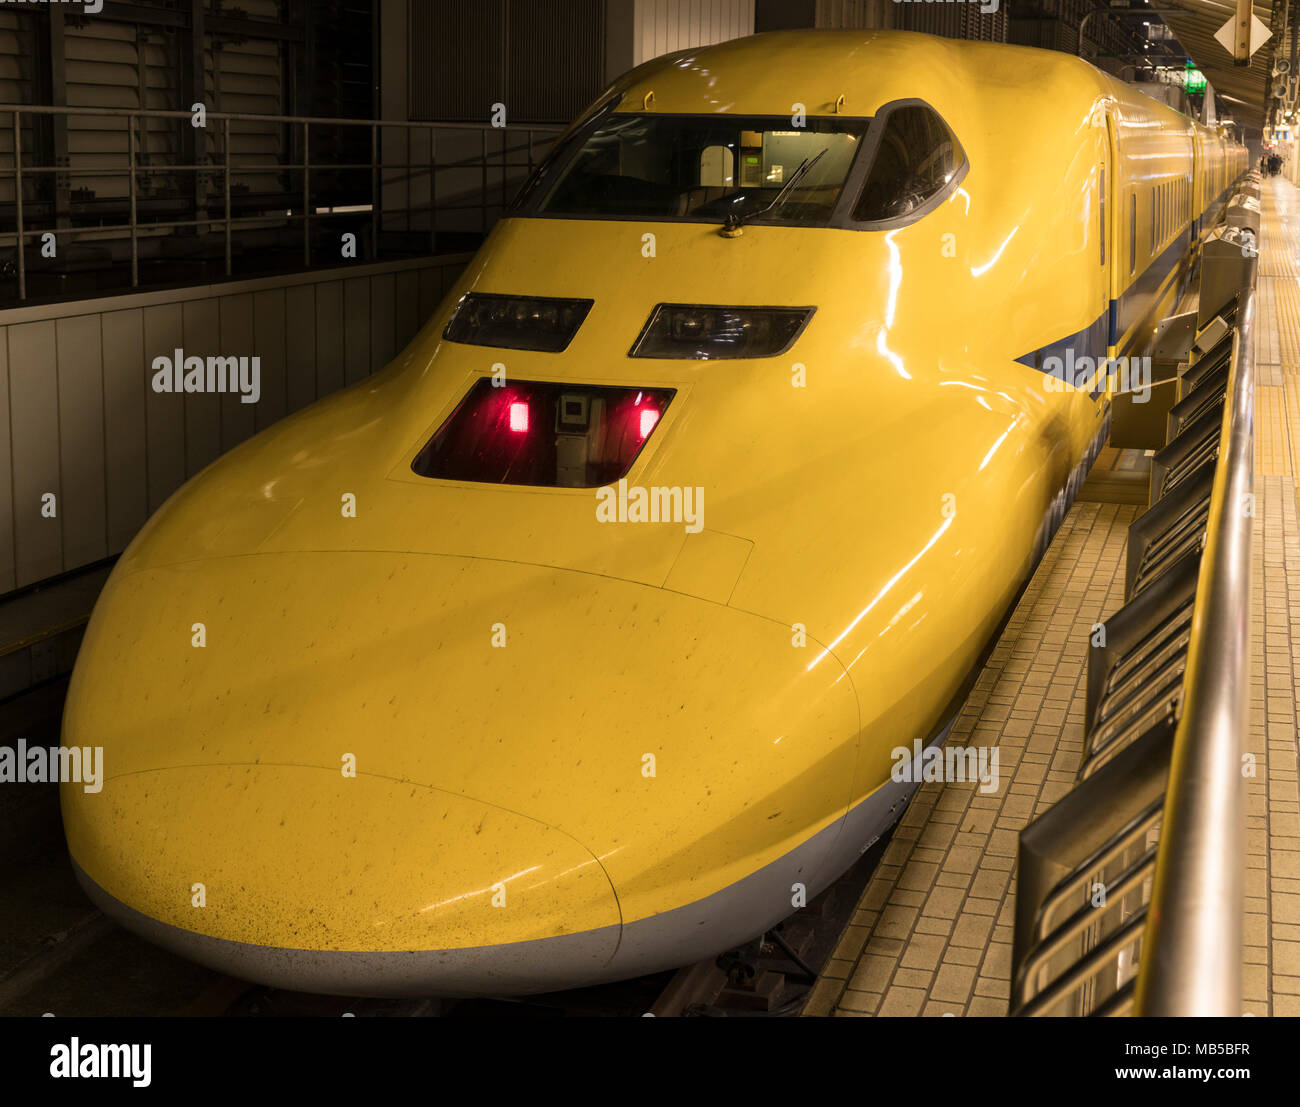 Japan Rail's Doctor Yellow, a special diagnostic Shinkansen train, at Tokyo Station. - Stock Image